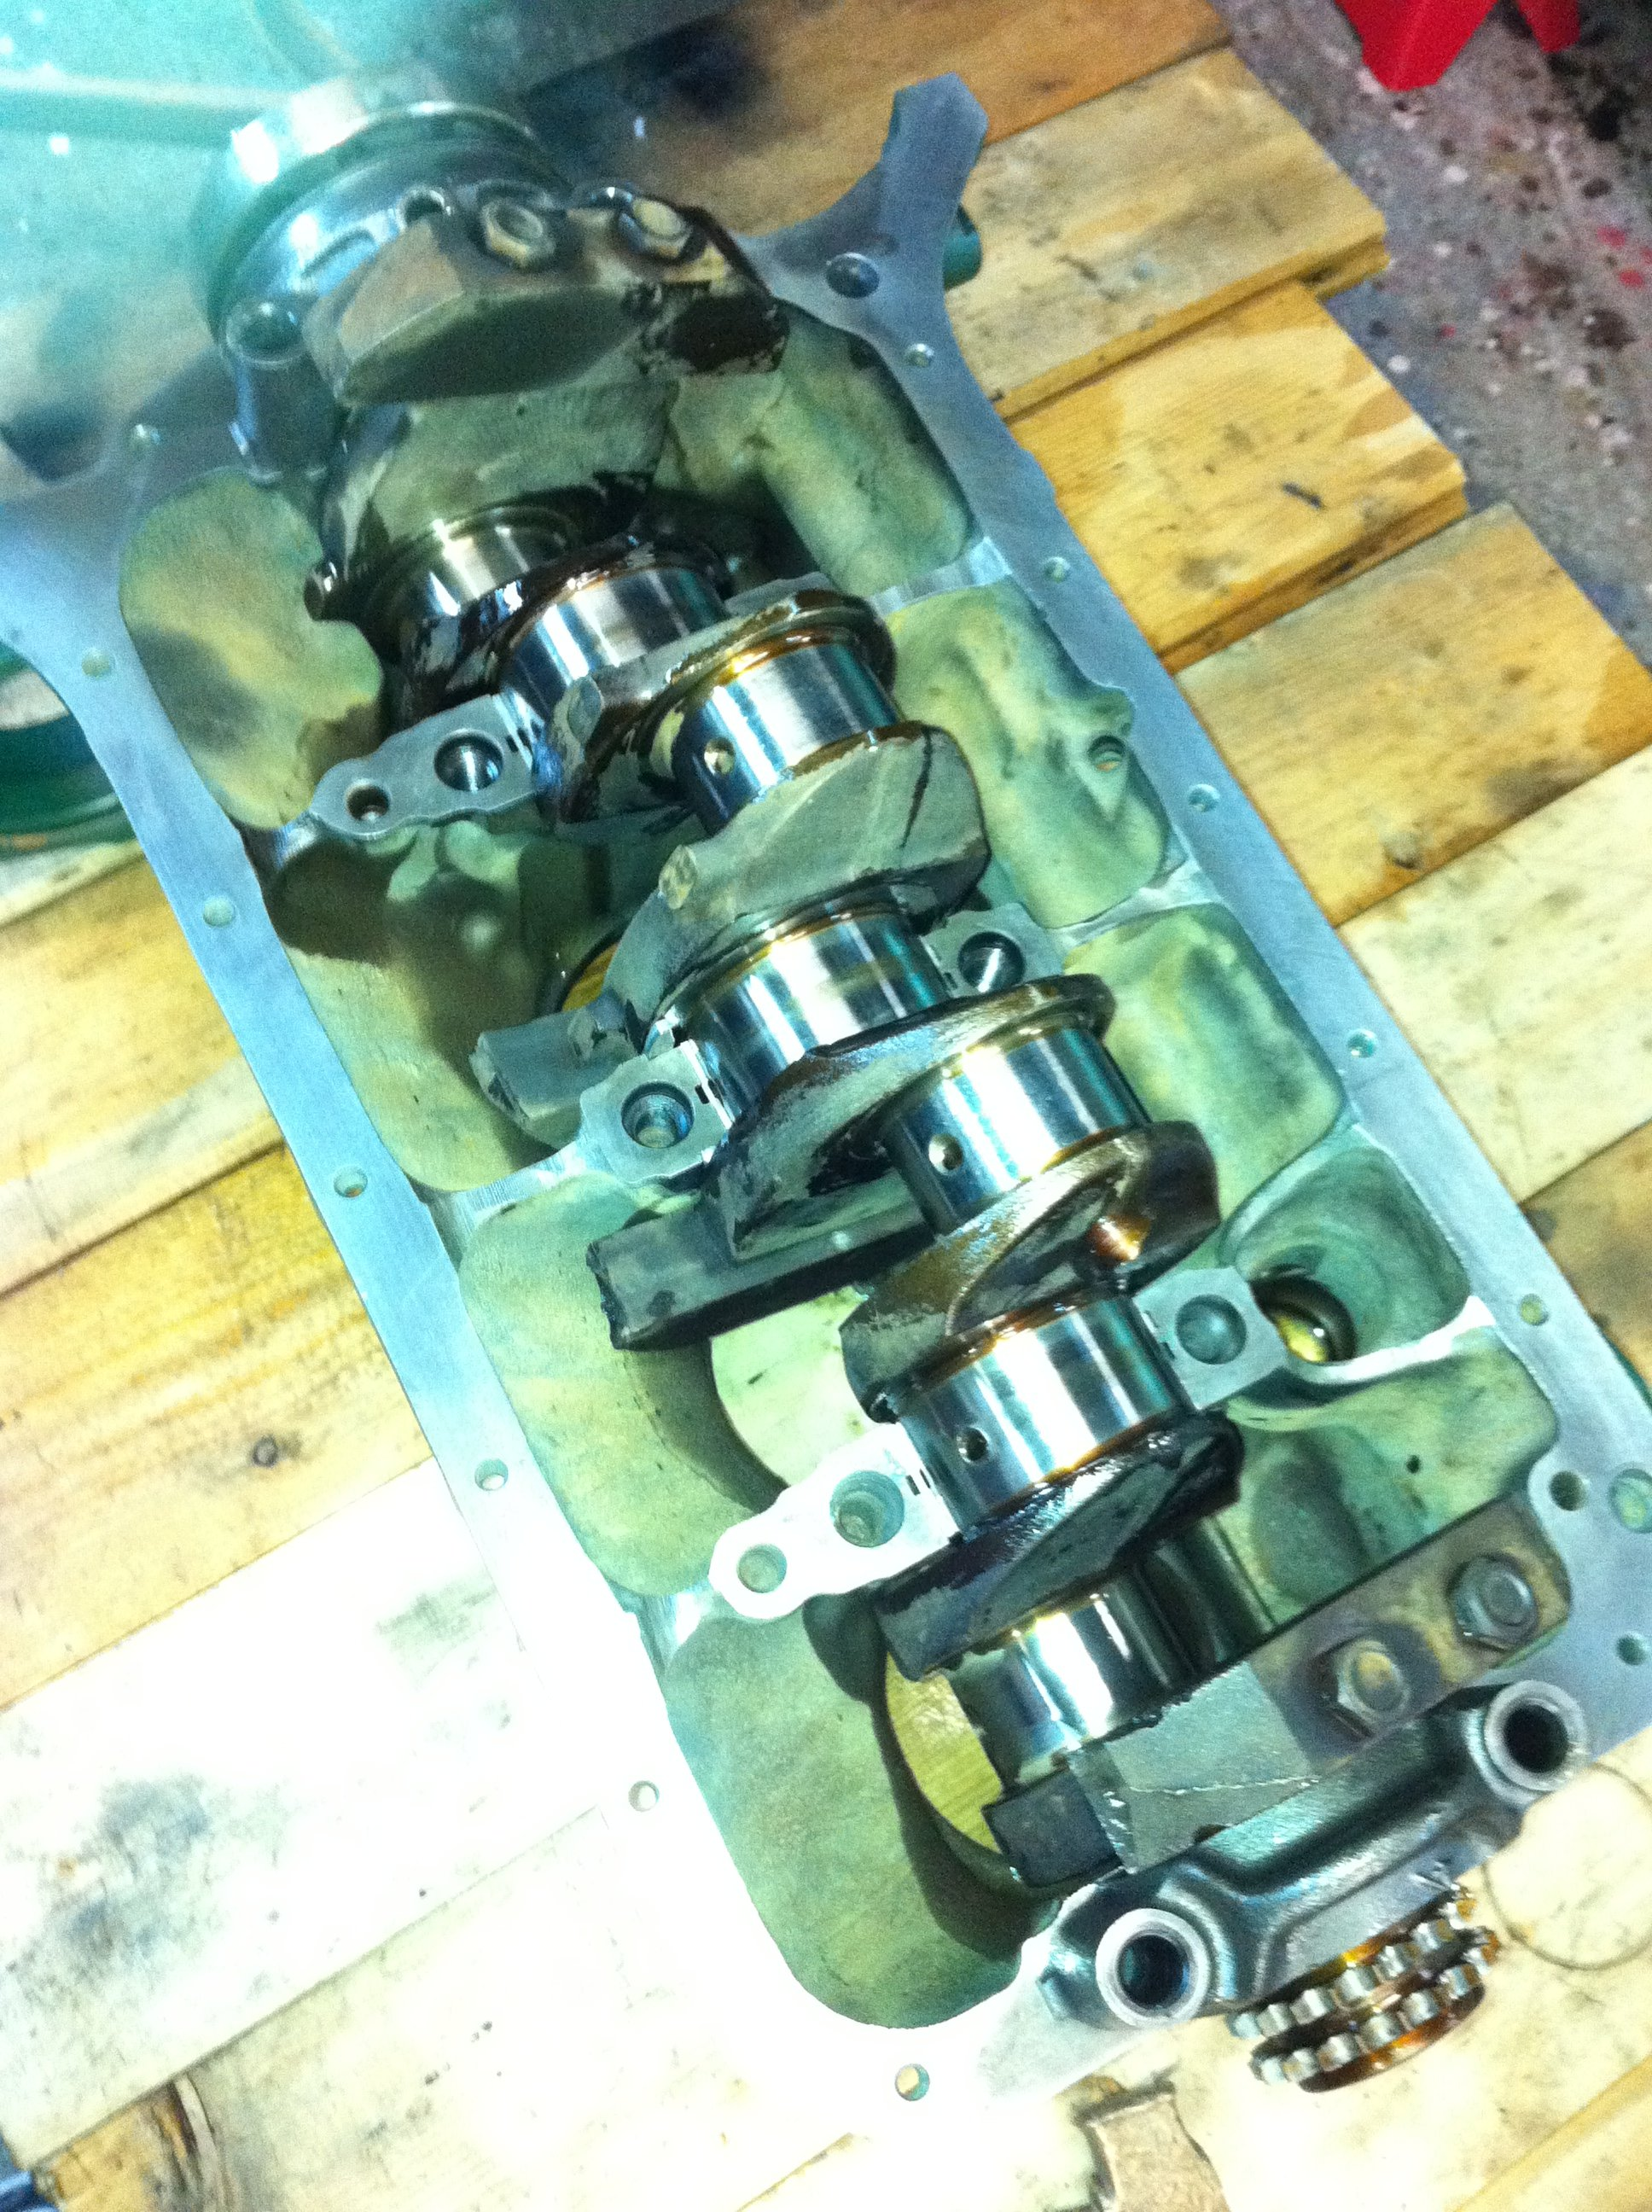 The crank gets cleaned again and goes in, new bearings installed